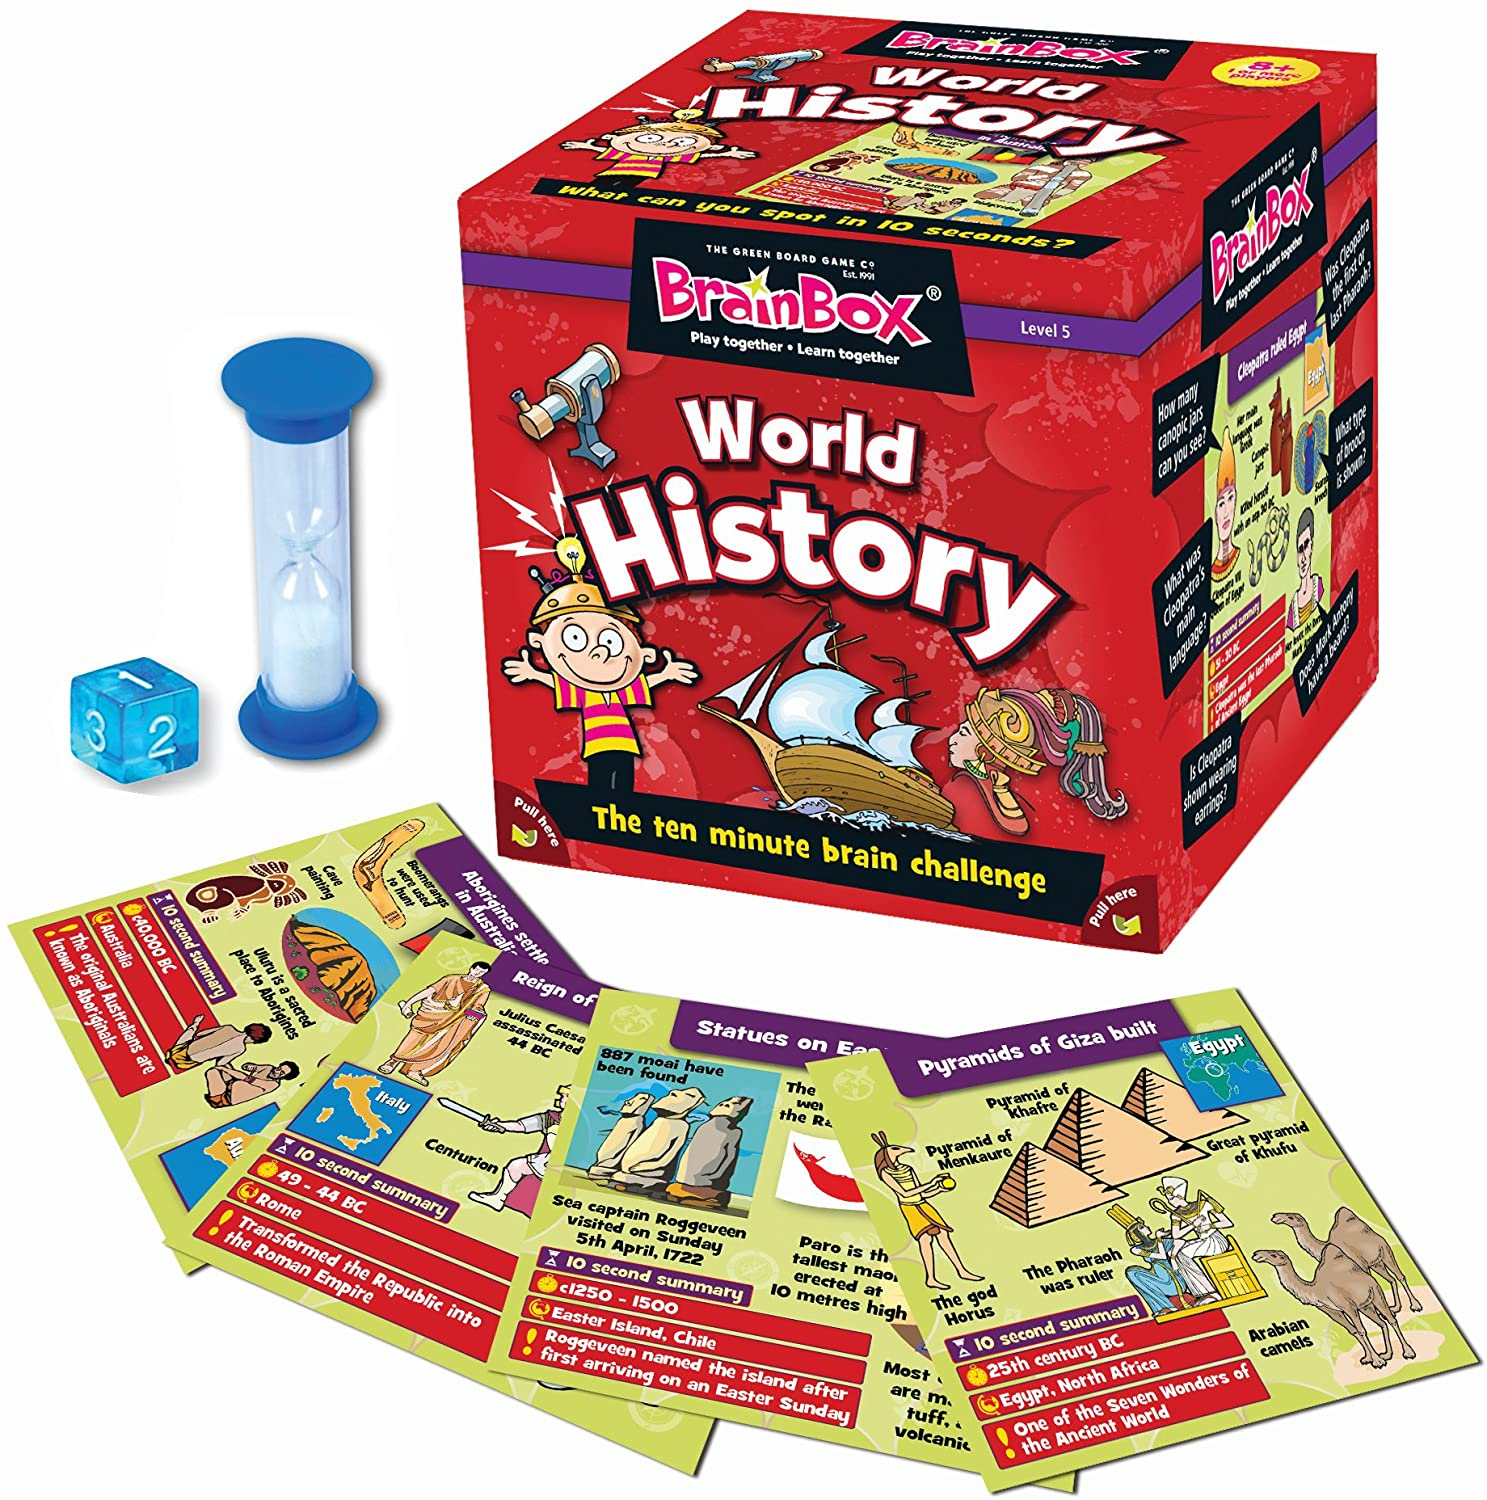 Our TOP Five… History Books (for kids) - BrainBox - World History by The Green Board Game Co.